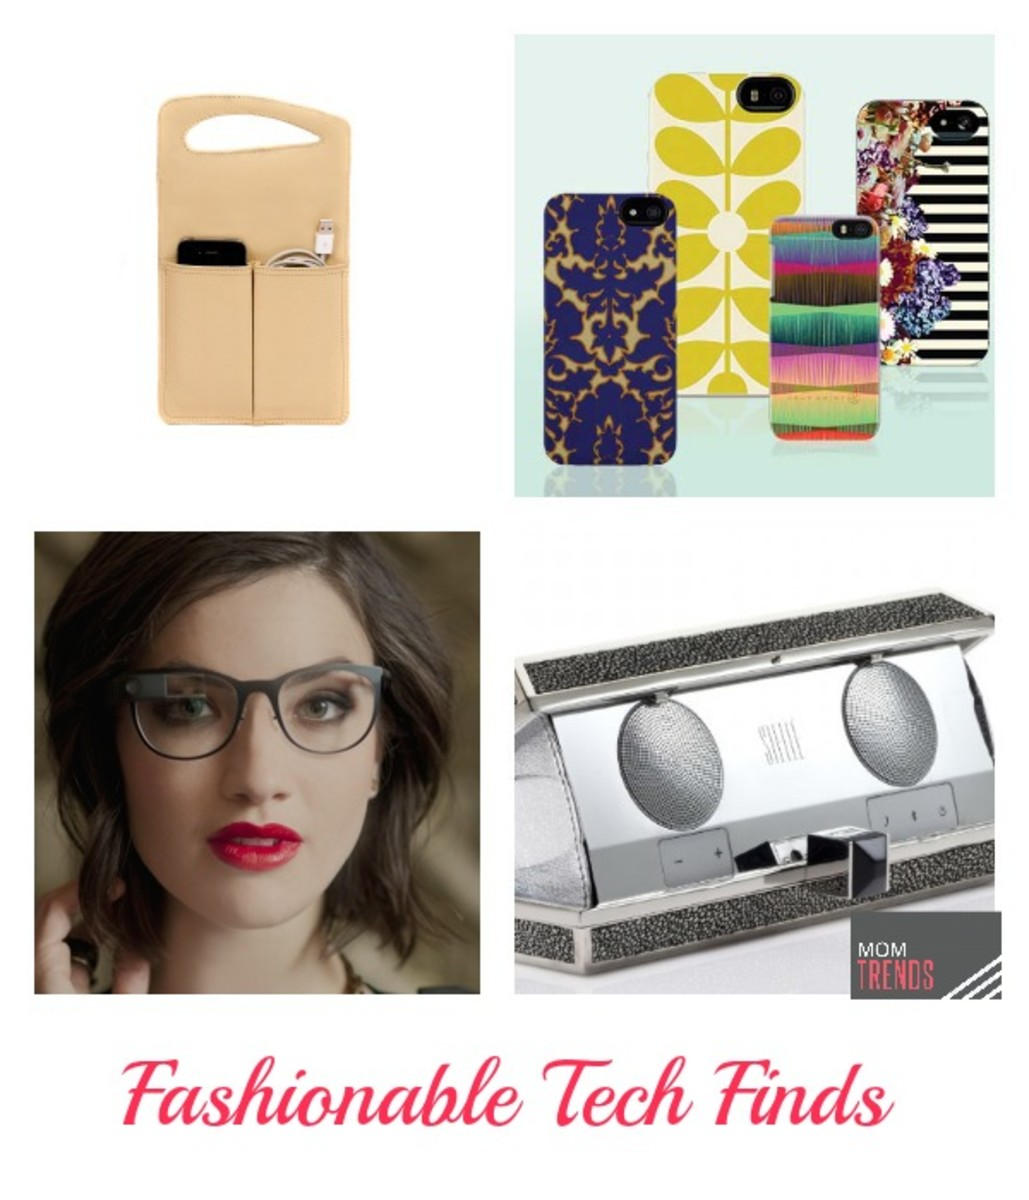 Fashionable Tech Finds